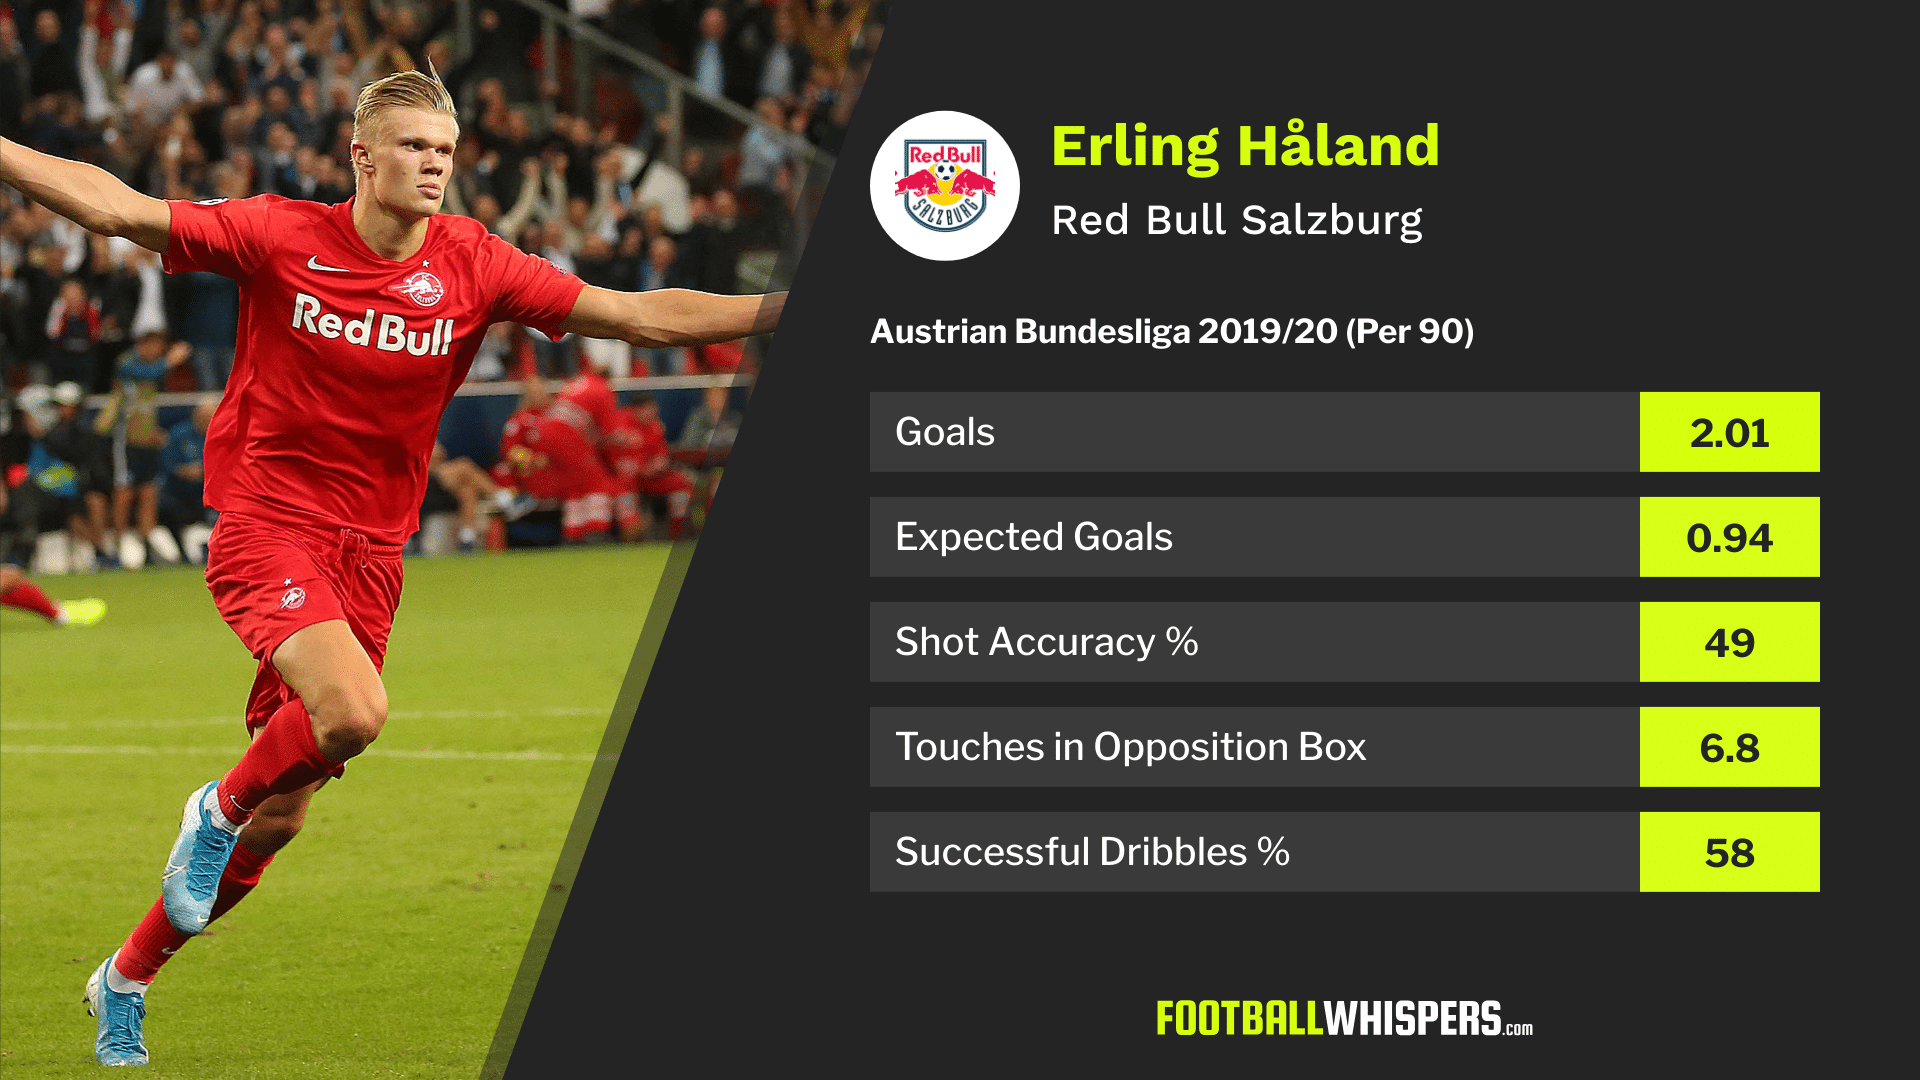 Erling can transform Manchester United's history with the Håland family